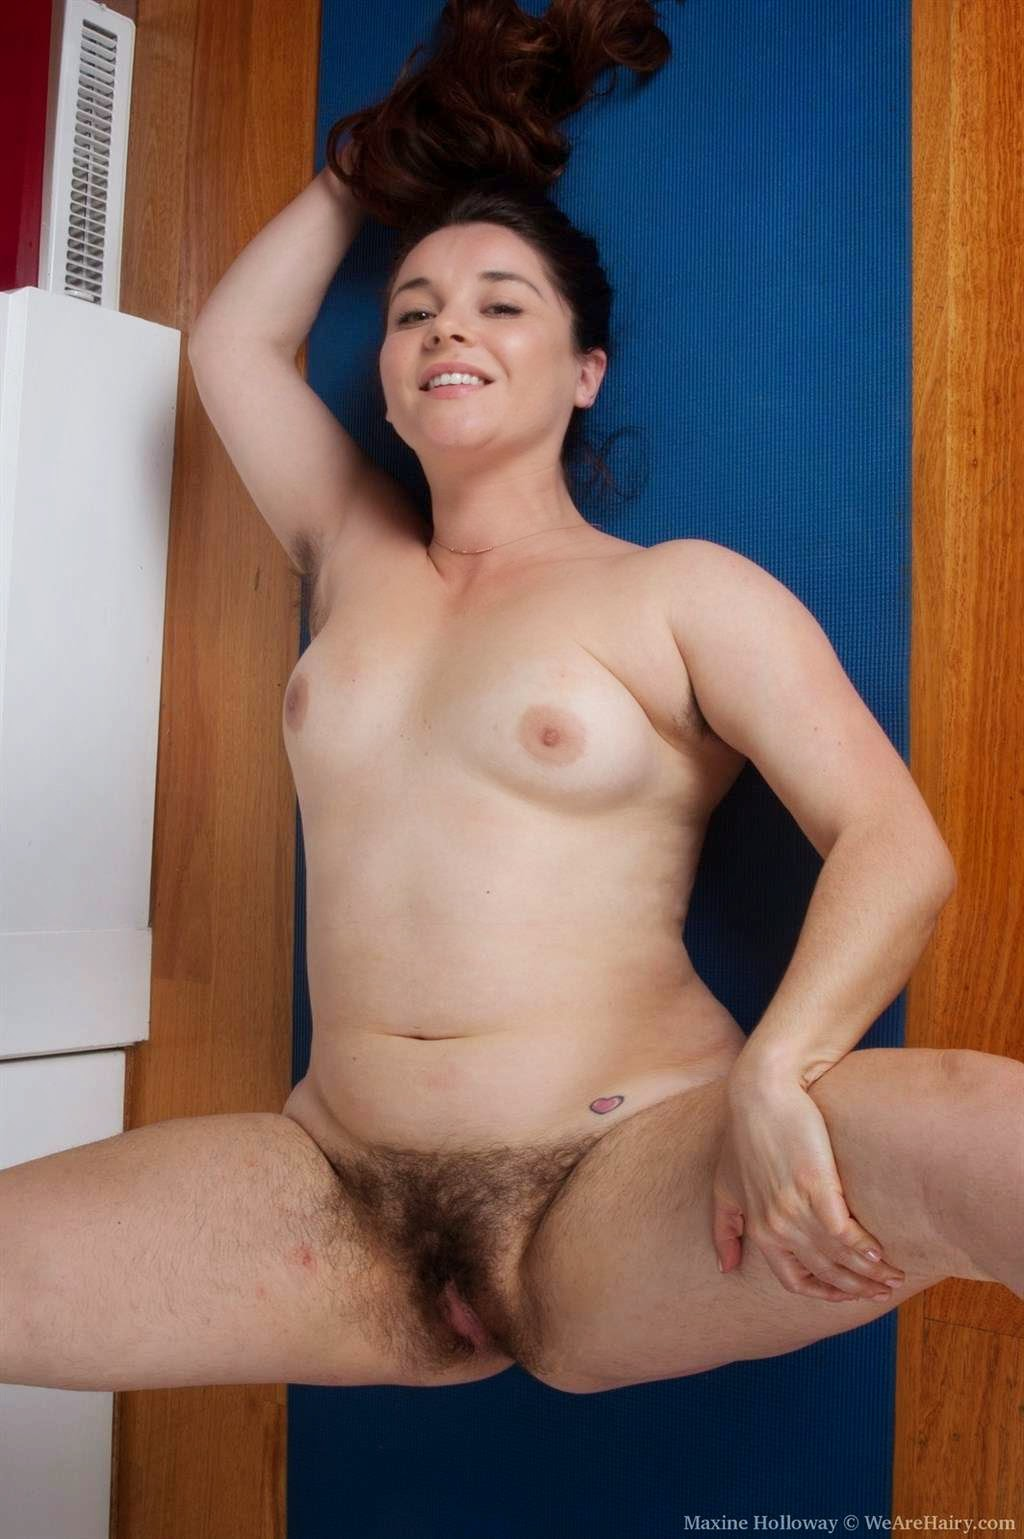 Granny Mature And Milf Hairy Mature Armpits And Hair -7932